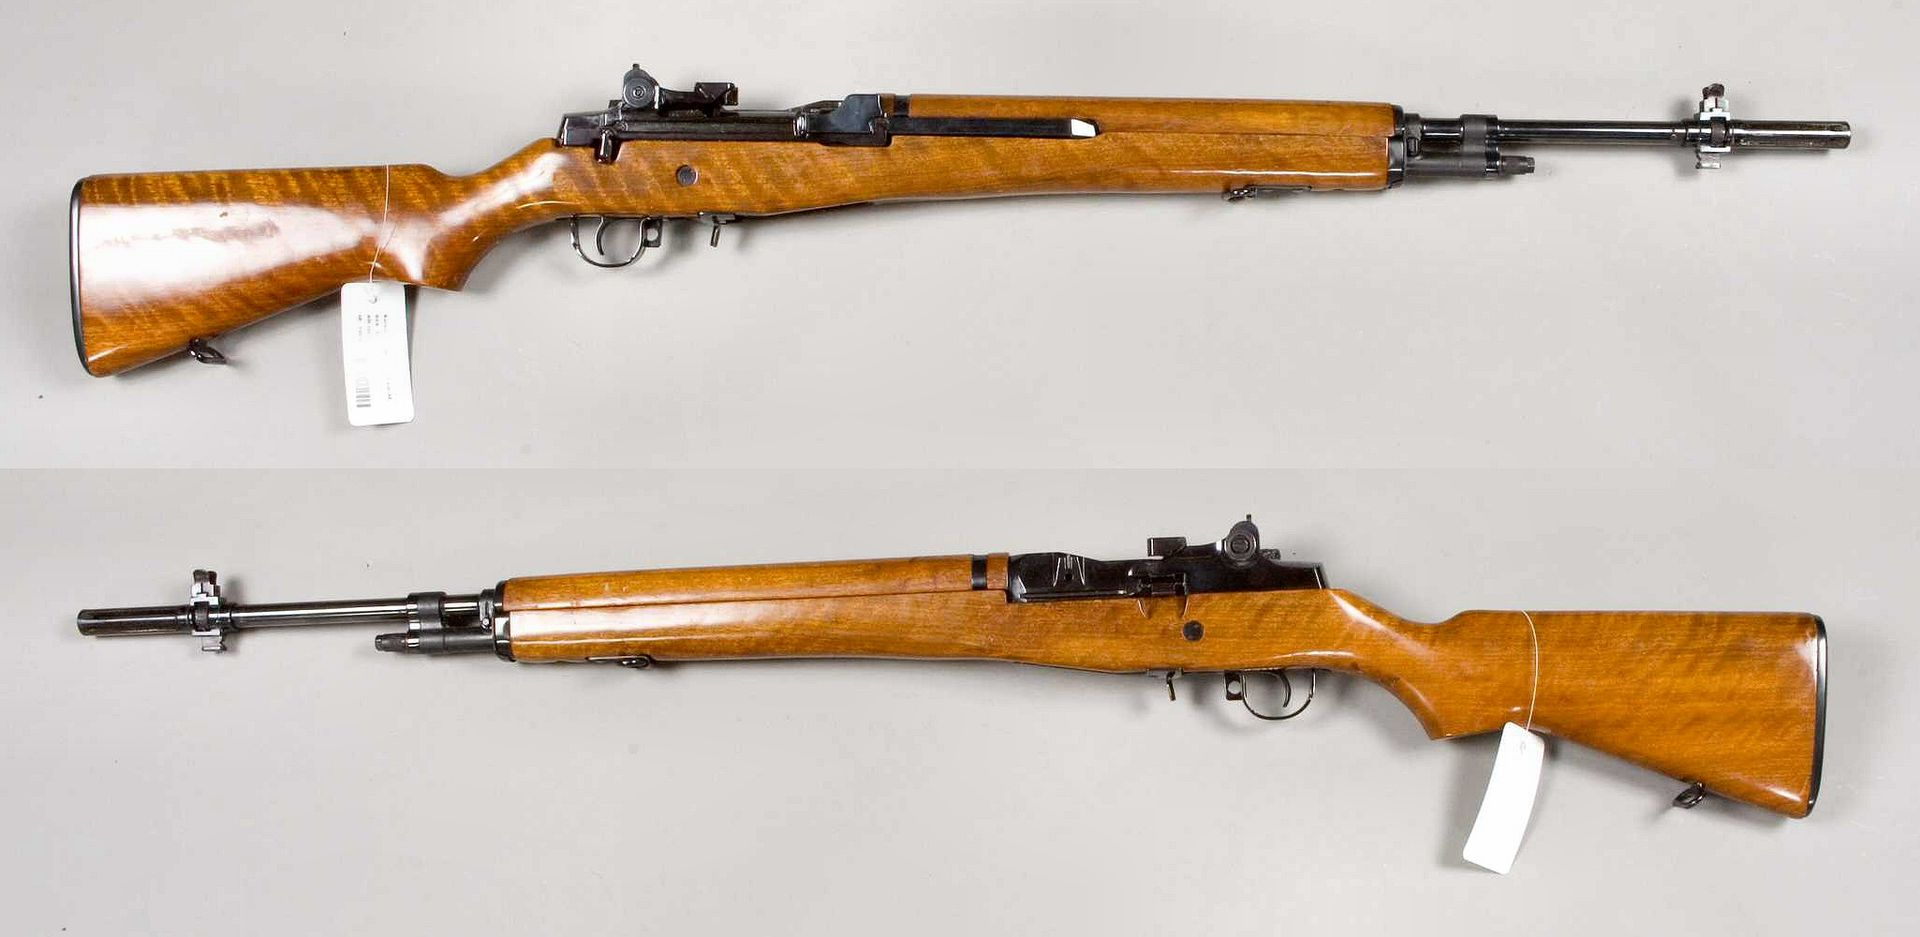 1920px-M14_rifle_-_USA_-_7%2C62x51mm_-_S